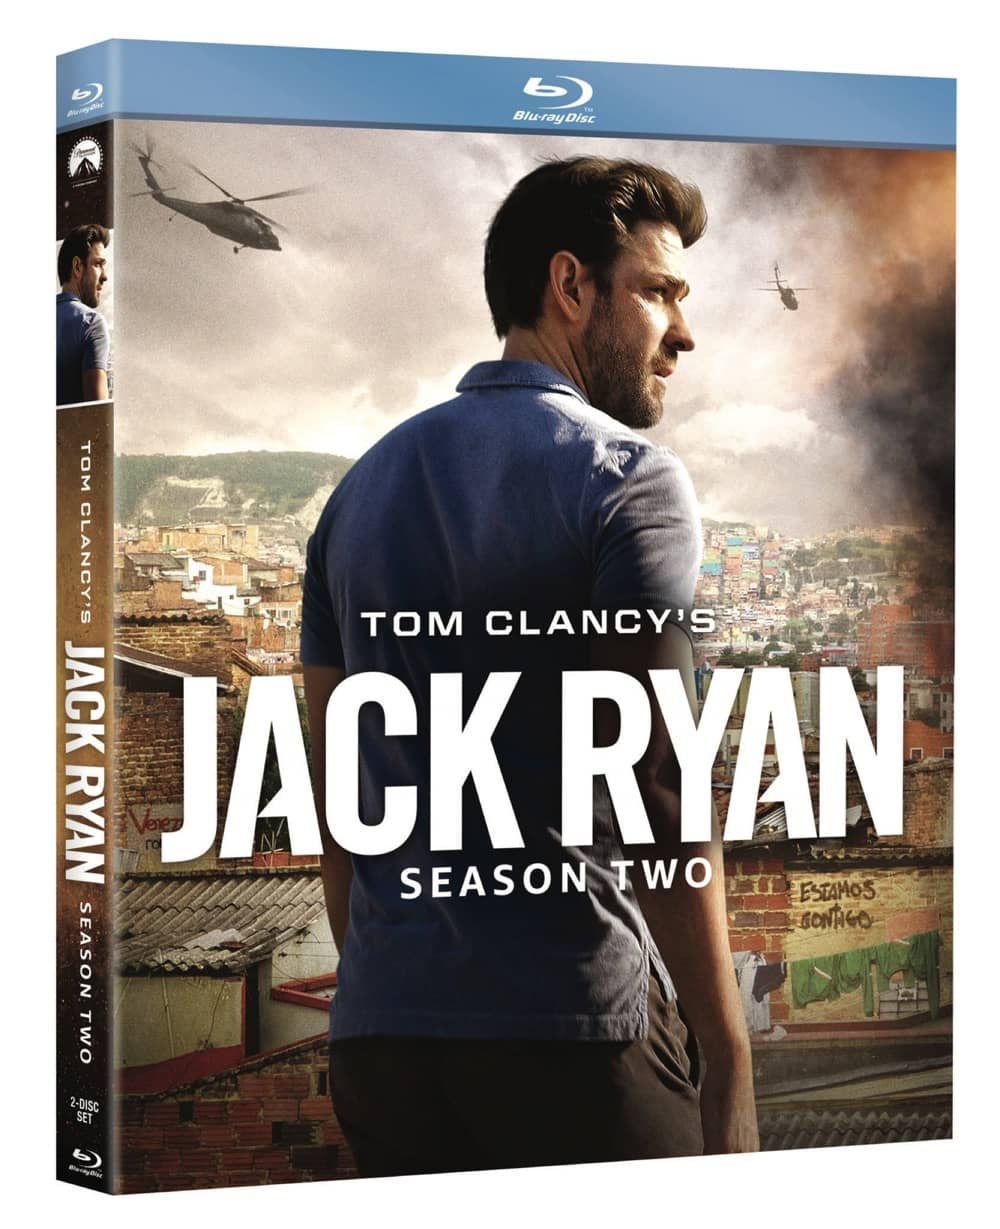 Jack Ryan Ssn 2 box art Blu ray